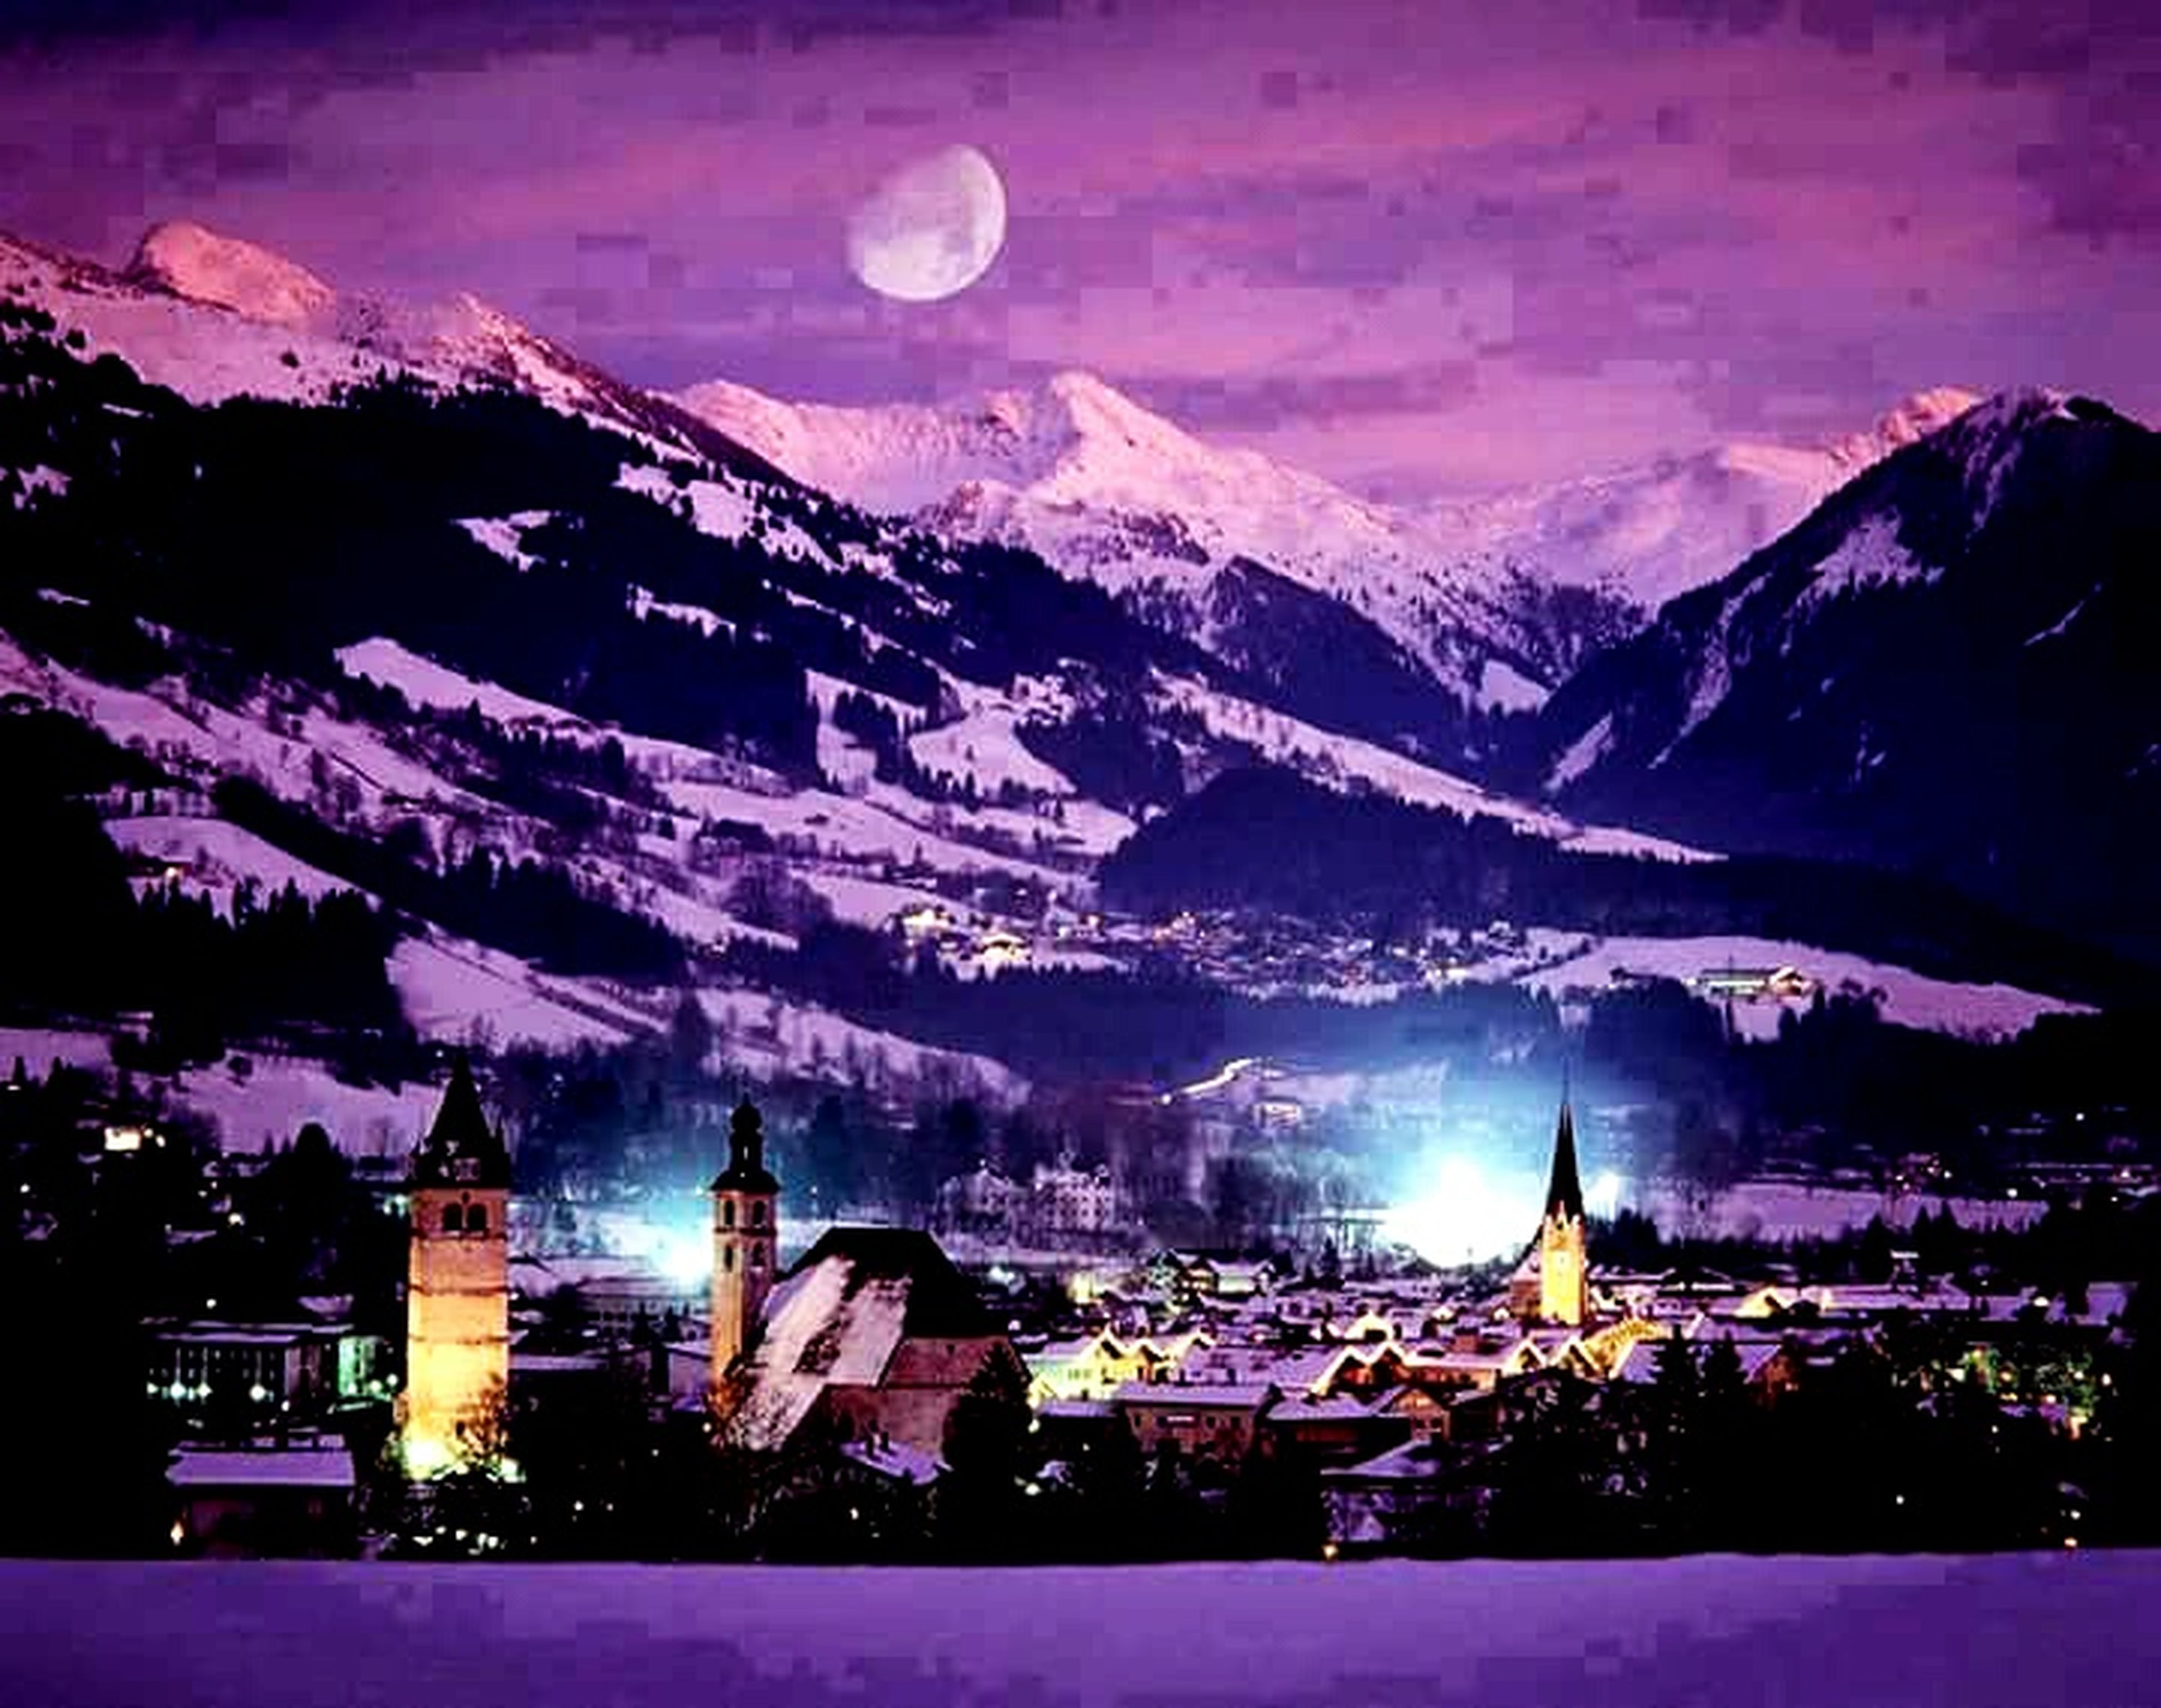 illuminated, mountain, night, building exterior, architecture, built structure, sky, mountain range, dusk, snow, winter, moon, house, landscape, residential building, residential structure, town, city, outdoors, lighting equipment